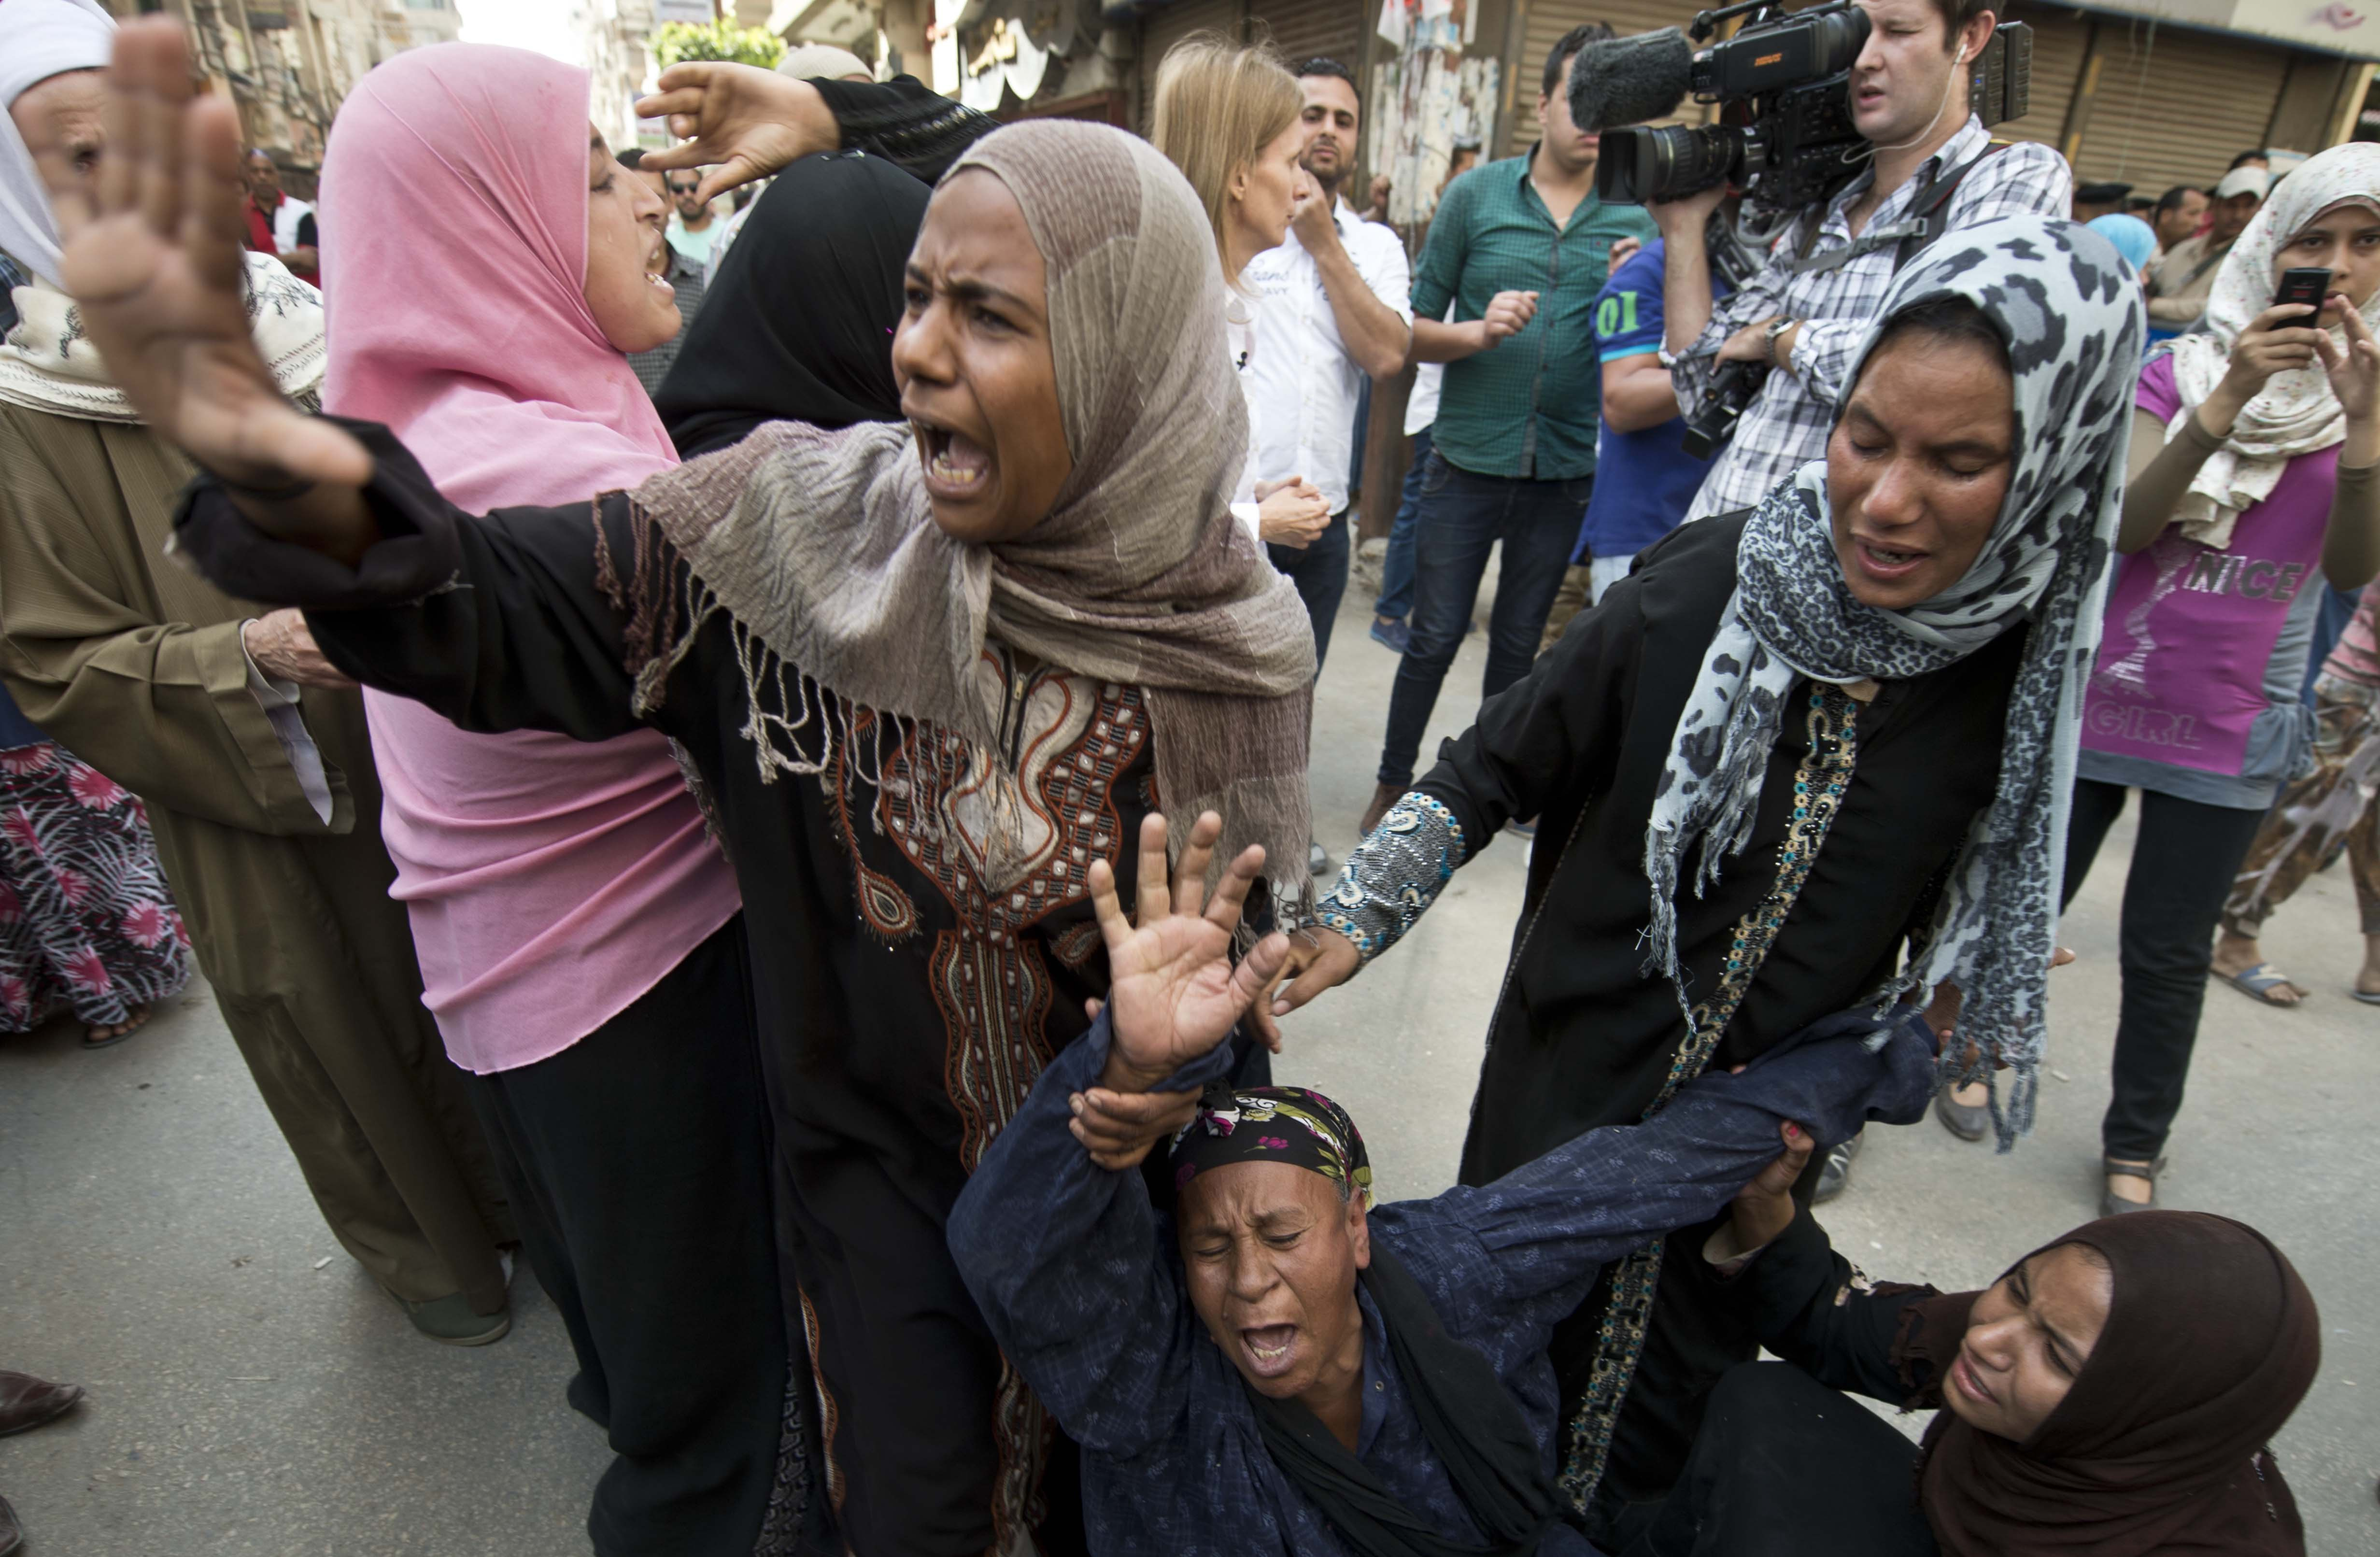 Egyptians react outside the courtroom in Egypt's southern province of Minya after an Egyptian court sentenced Muslim Brotherhood leader Mohammed Badie and 682 alleged Brotherhood supporters to death on April 28, 2014